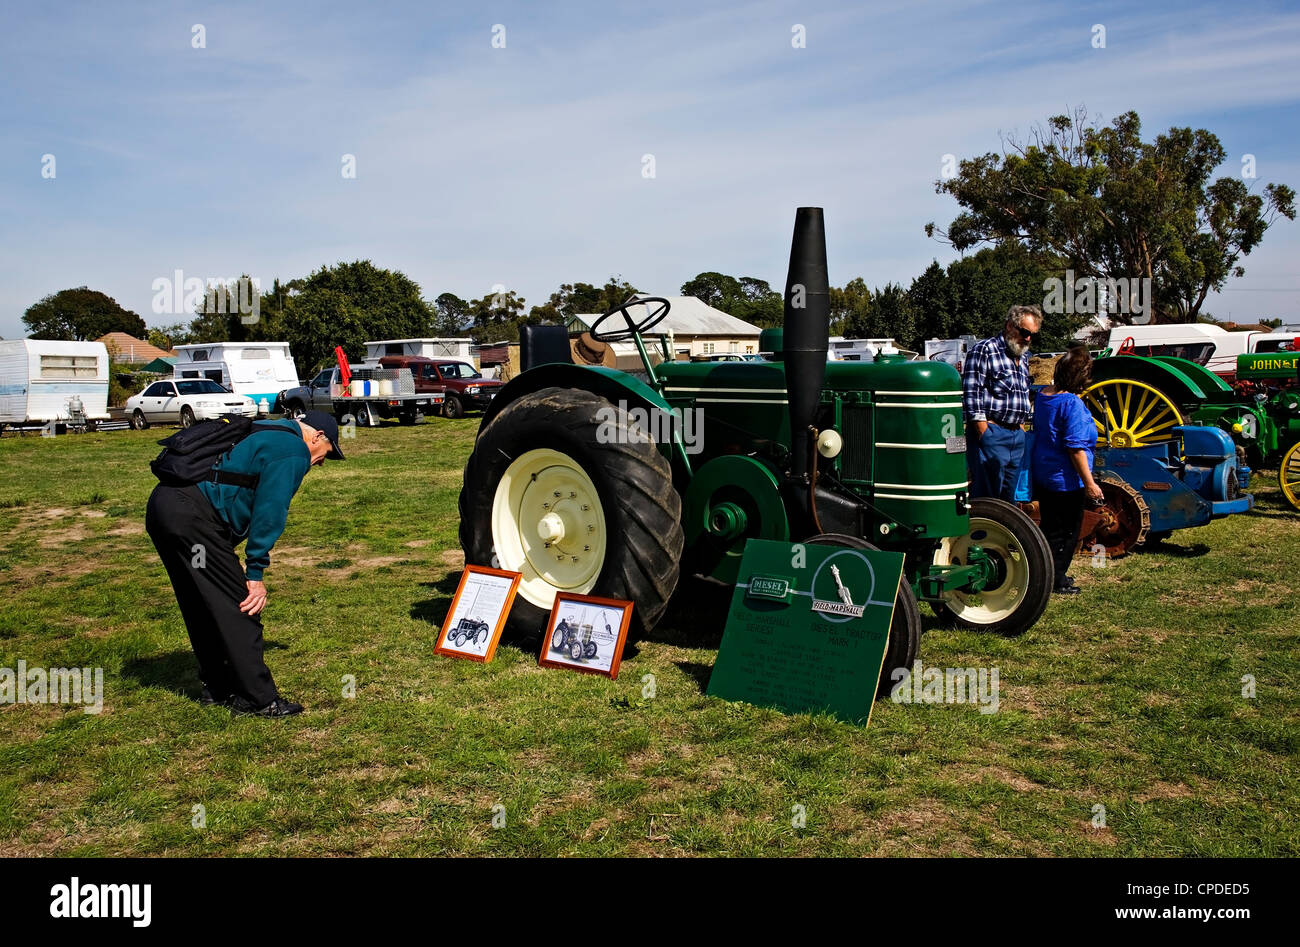 Clunes Australia  /  Old restored tractors are on display at the Historic Vehicle Show. Stock Photo